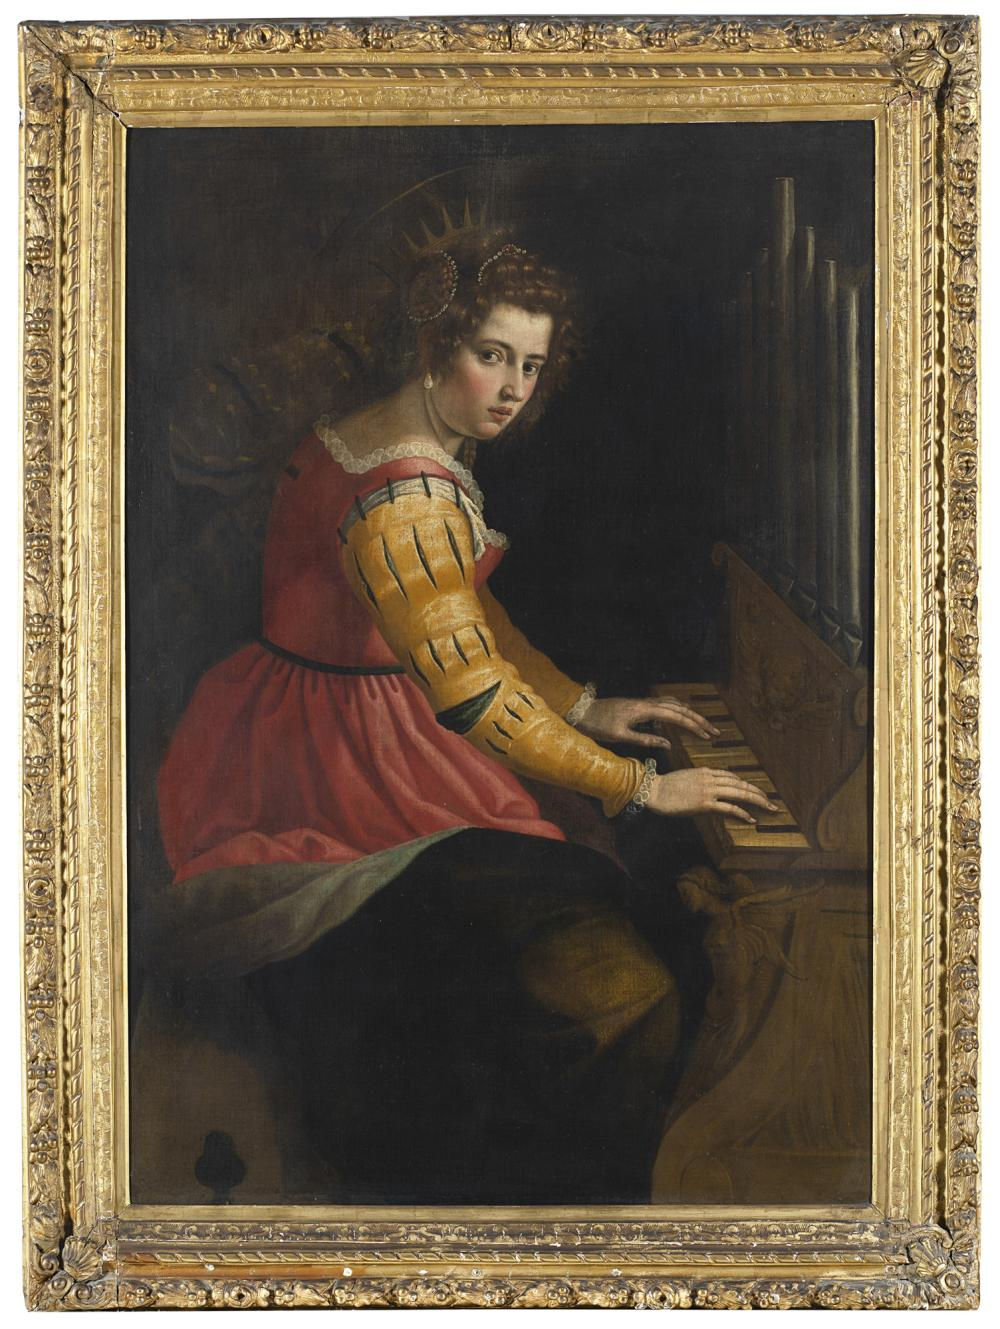 Tuscan school, 17th century Saint Cecilia playing the spinet Oil on canvas, 140x100 cm. Framed (defects and restorations) The painting is present in the Federico Zeri Photo Archive, cataloged as a work of an anonymous Florentine painter ...